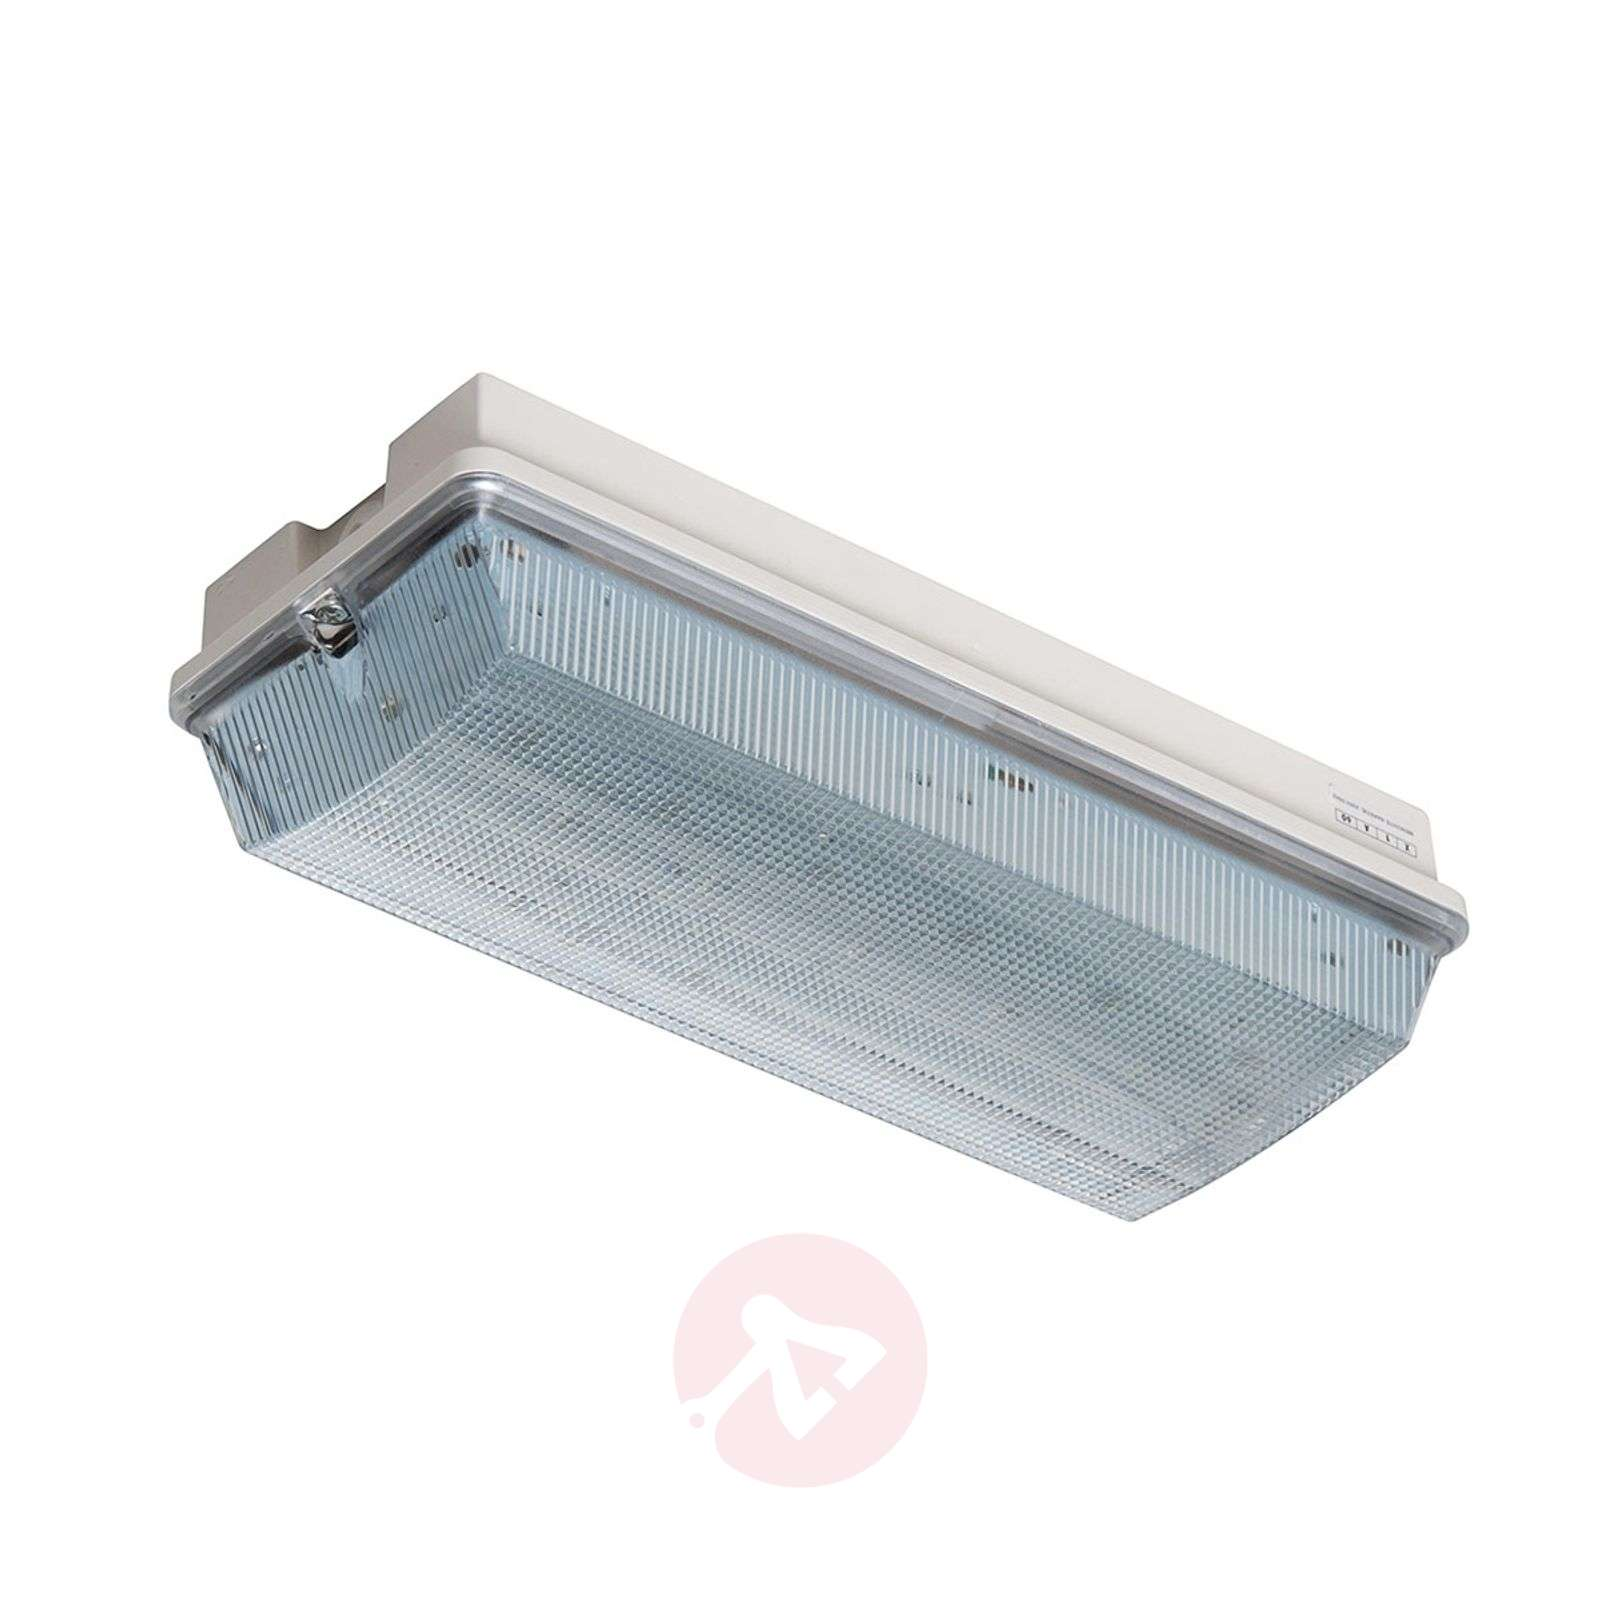 Lampa ewakuacyjna LED Frost-Lux do-30degreeC-1528022-01